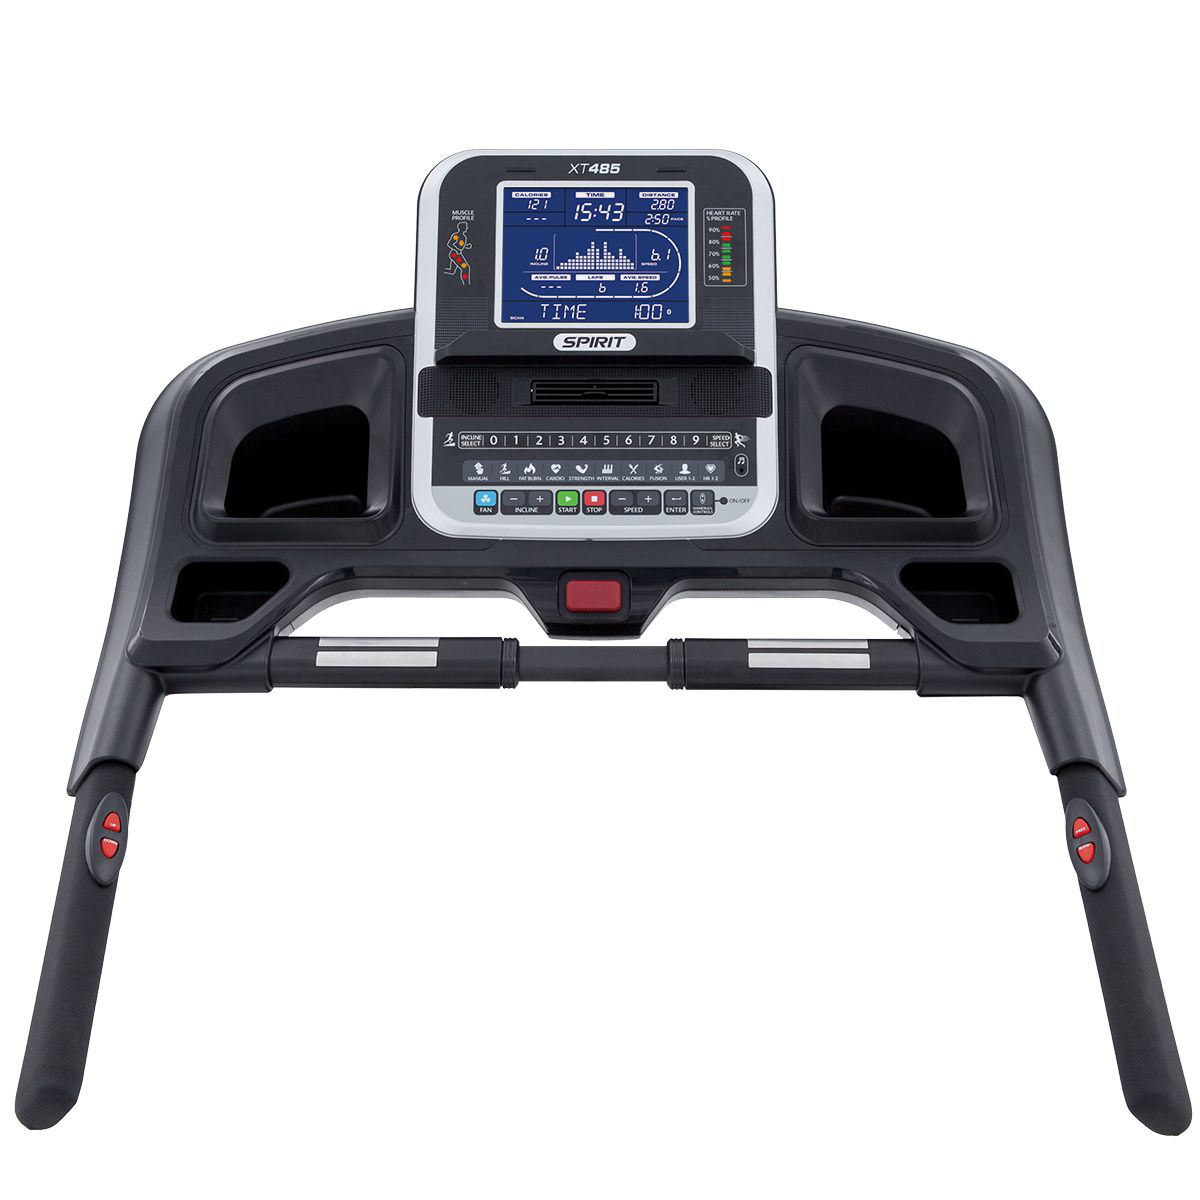 Spirit Fitness XT485 treadmill console showing monitor, cupholders, hand pulse grips, handlebars, and quick controls